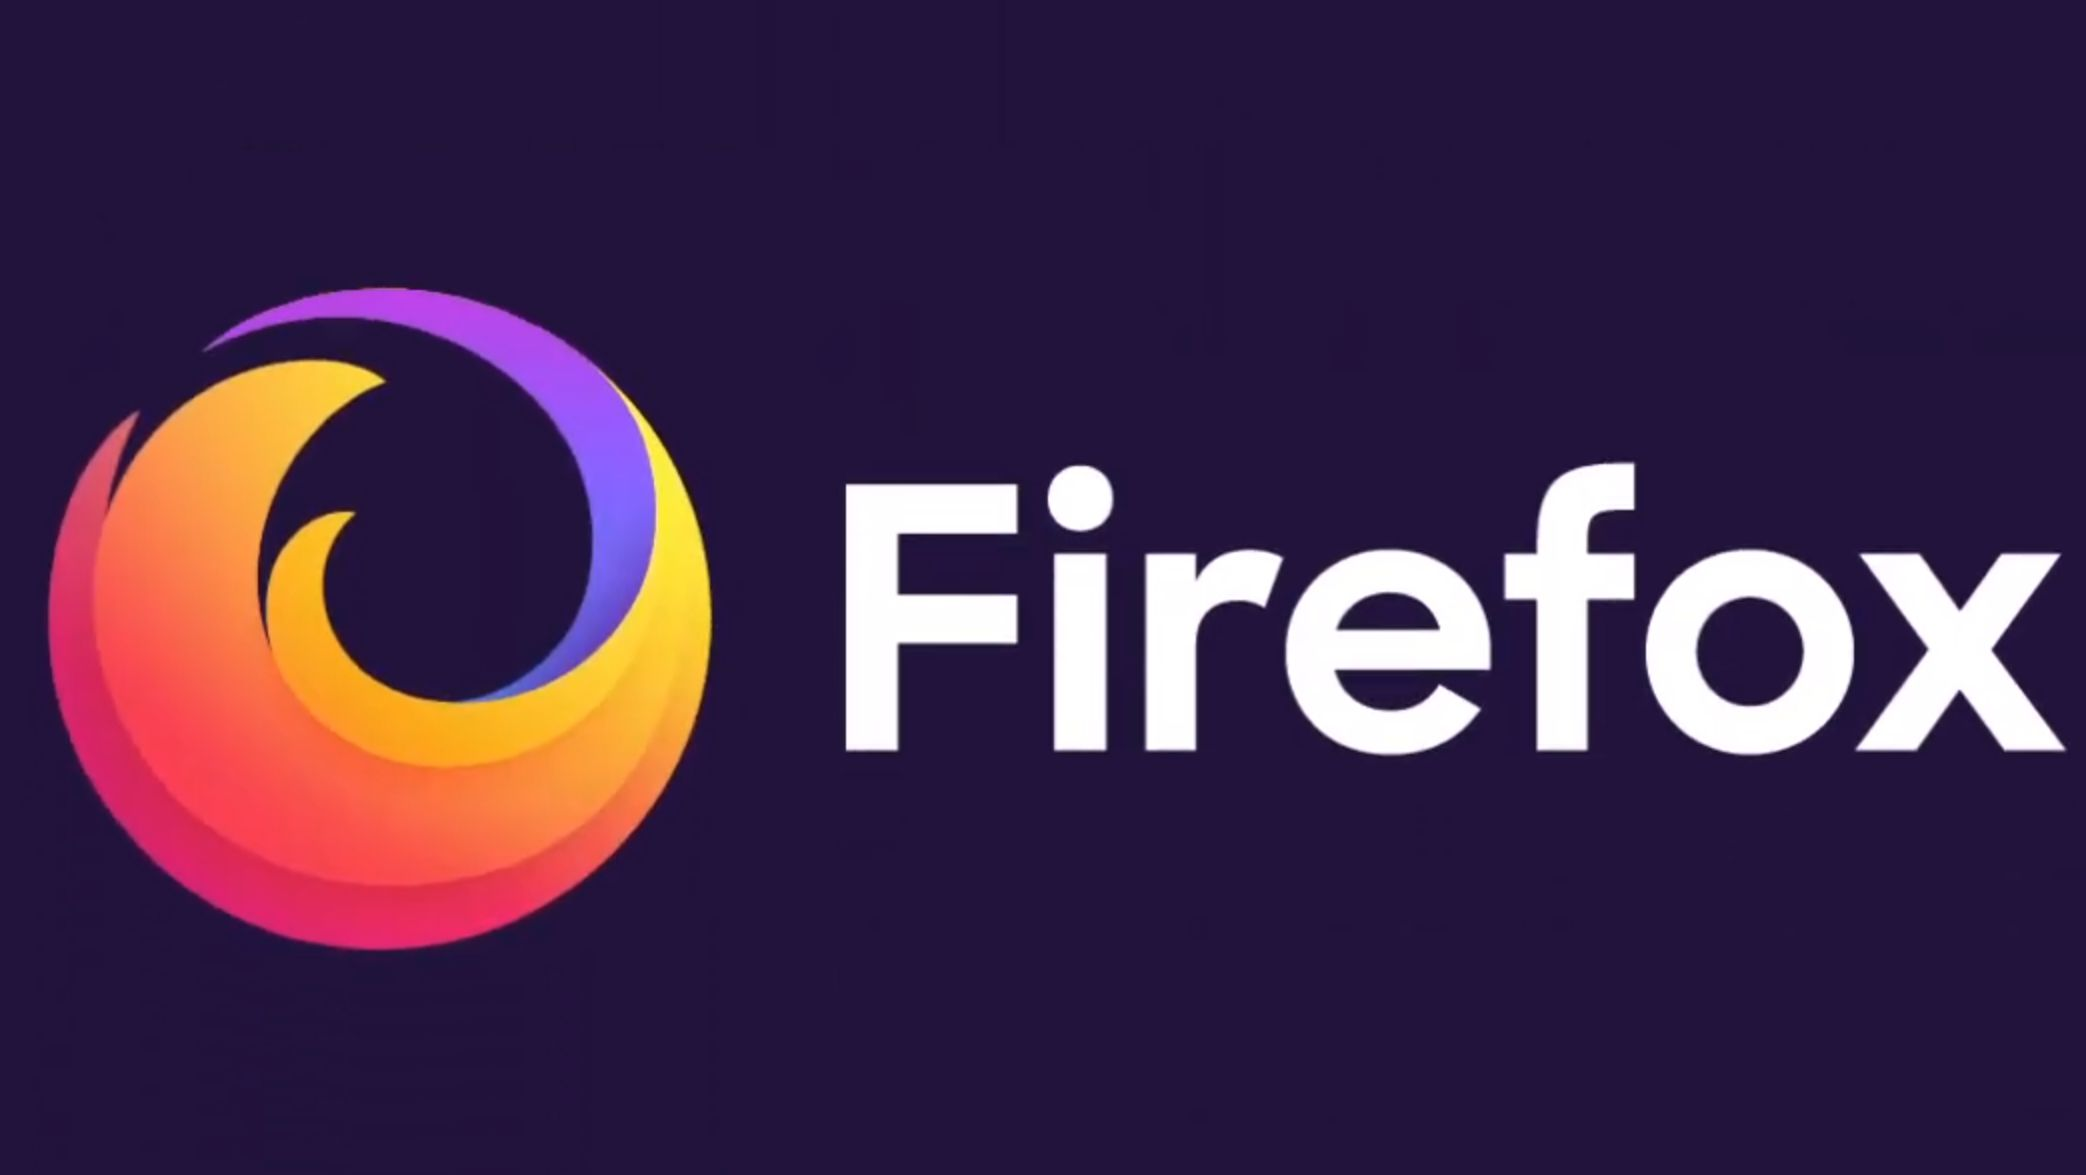 Mozilla and Firefox could be about to change the VPN and privacy